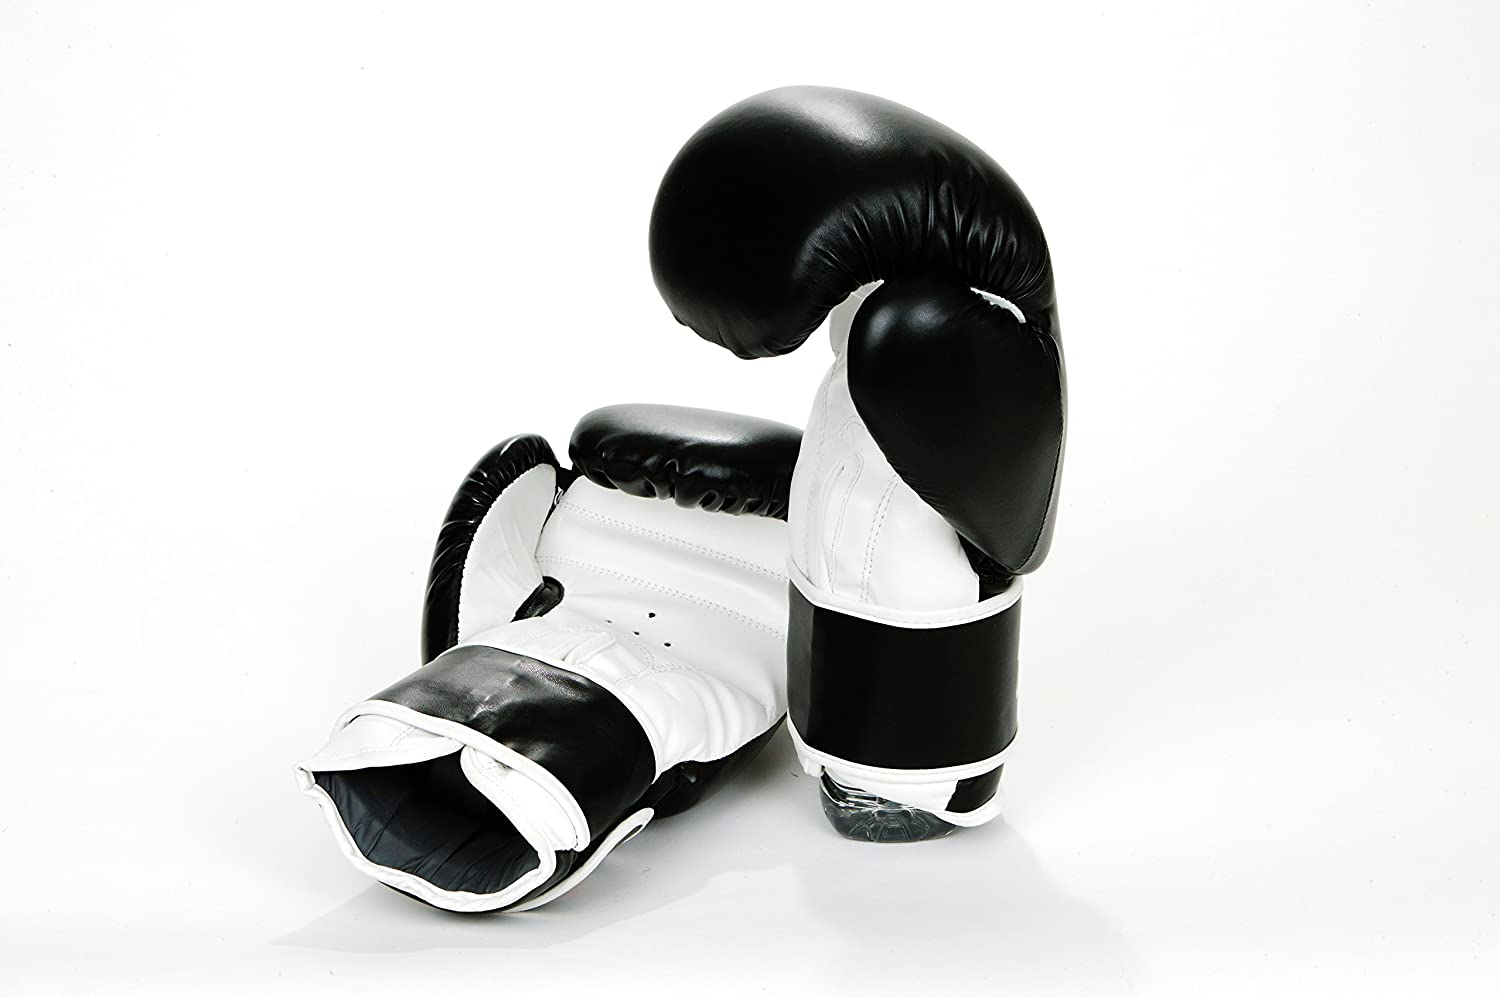 ZEALOUS BLACK BOXING GLOVE SPARRING PUNCH BAG MUAY THAI KICKBOXING MMA